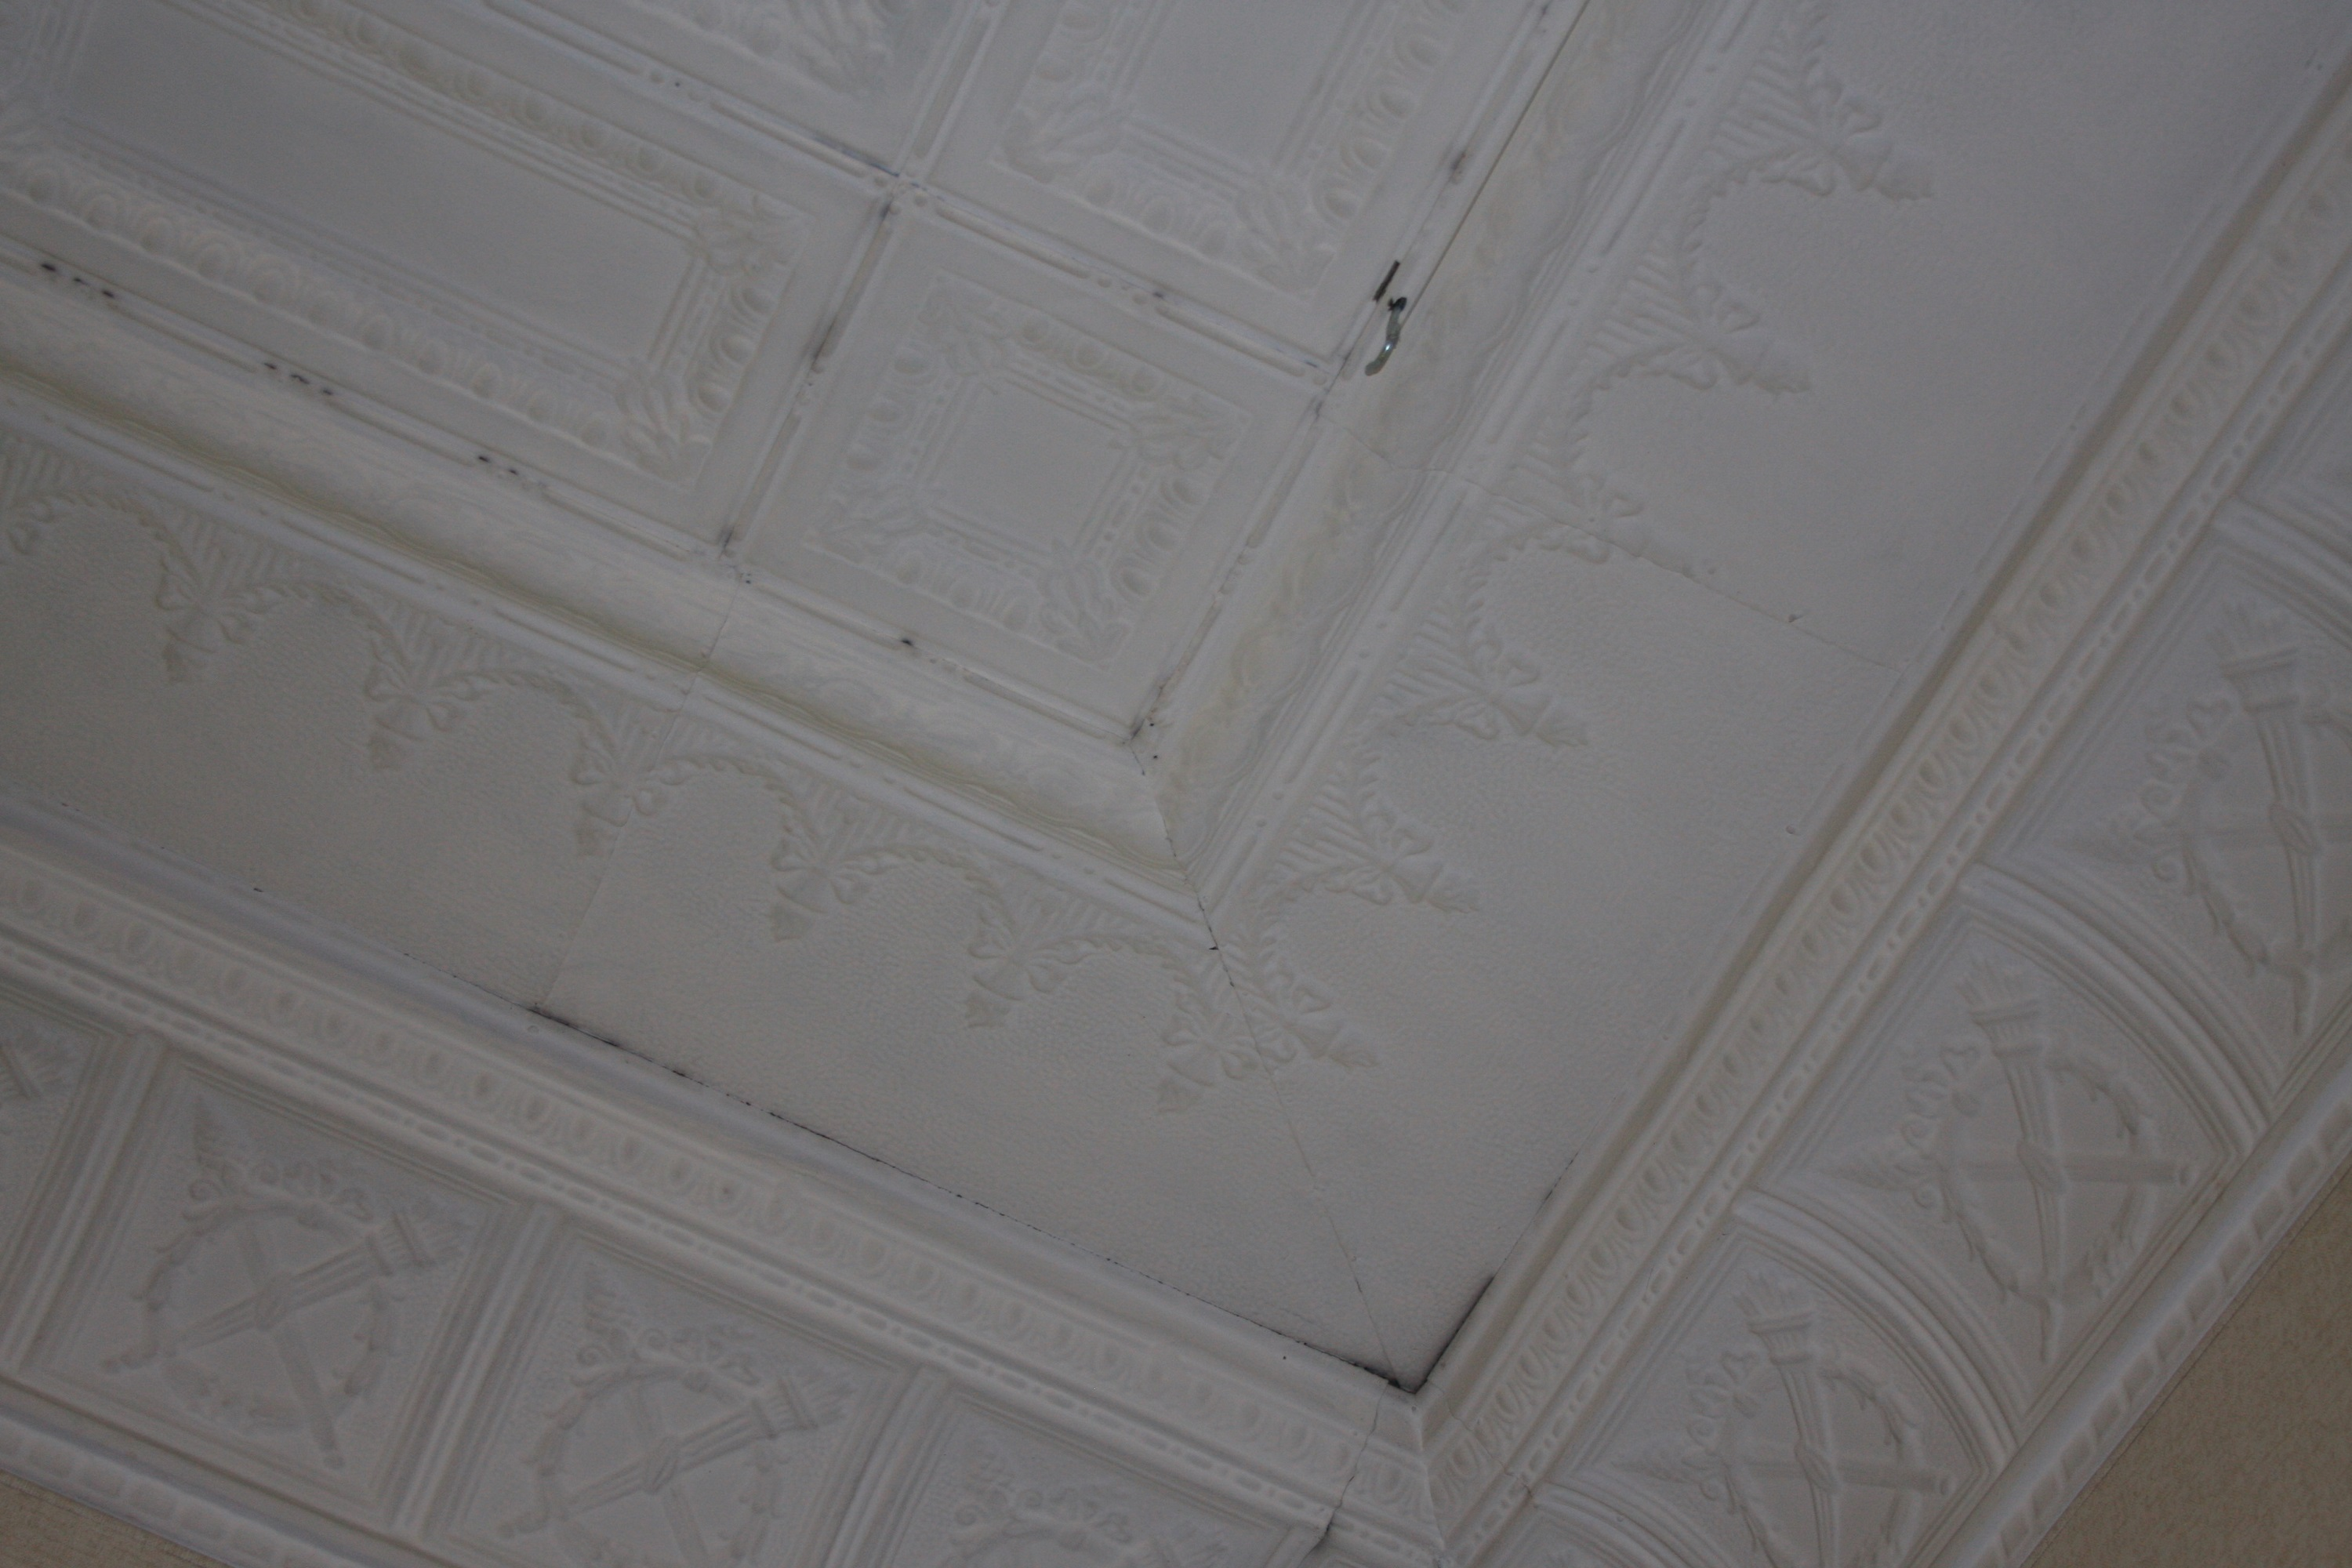 Tin Ceiling Jpg Old Tiles Worth Anything